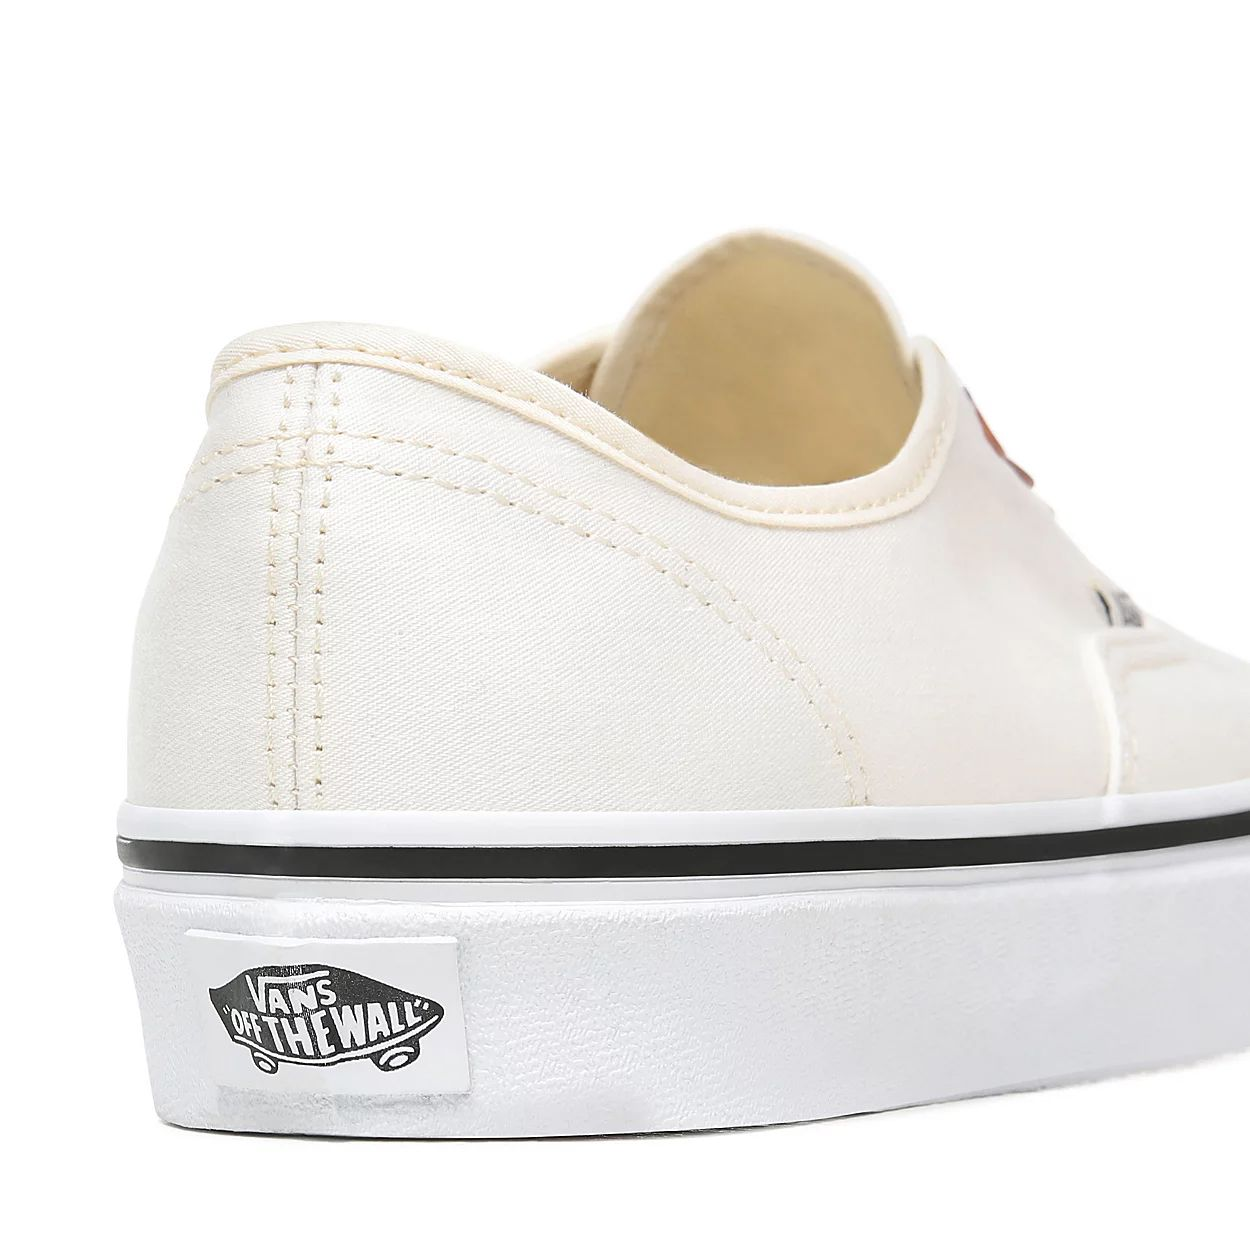 Vans Tort Authentic Shoes in White